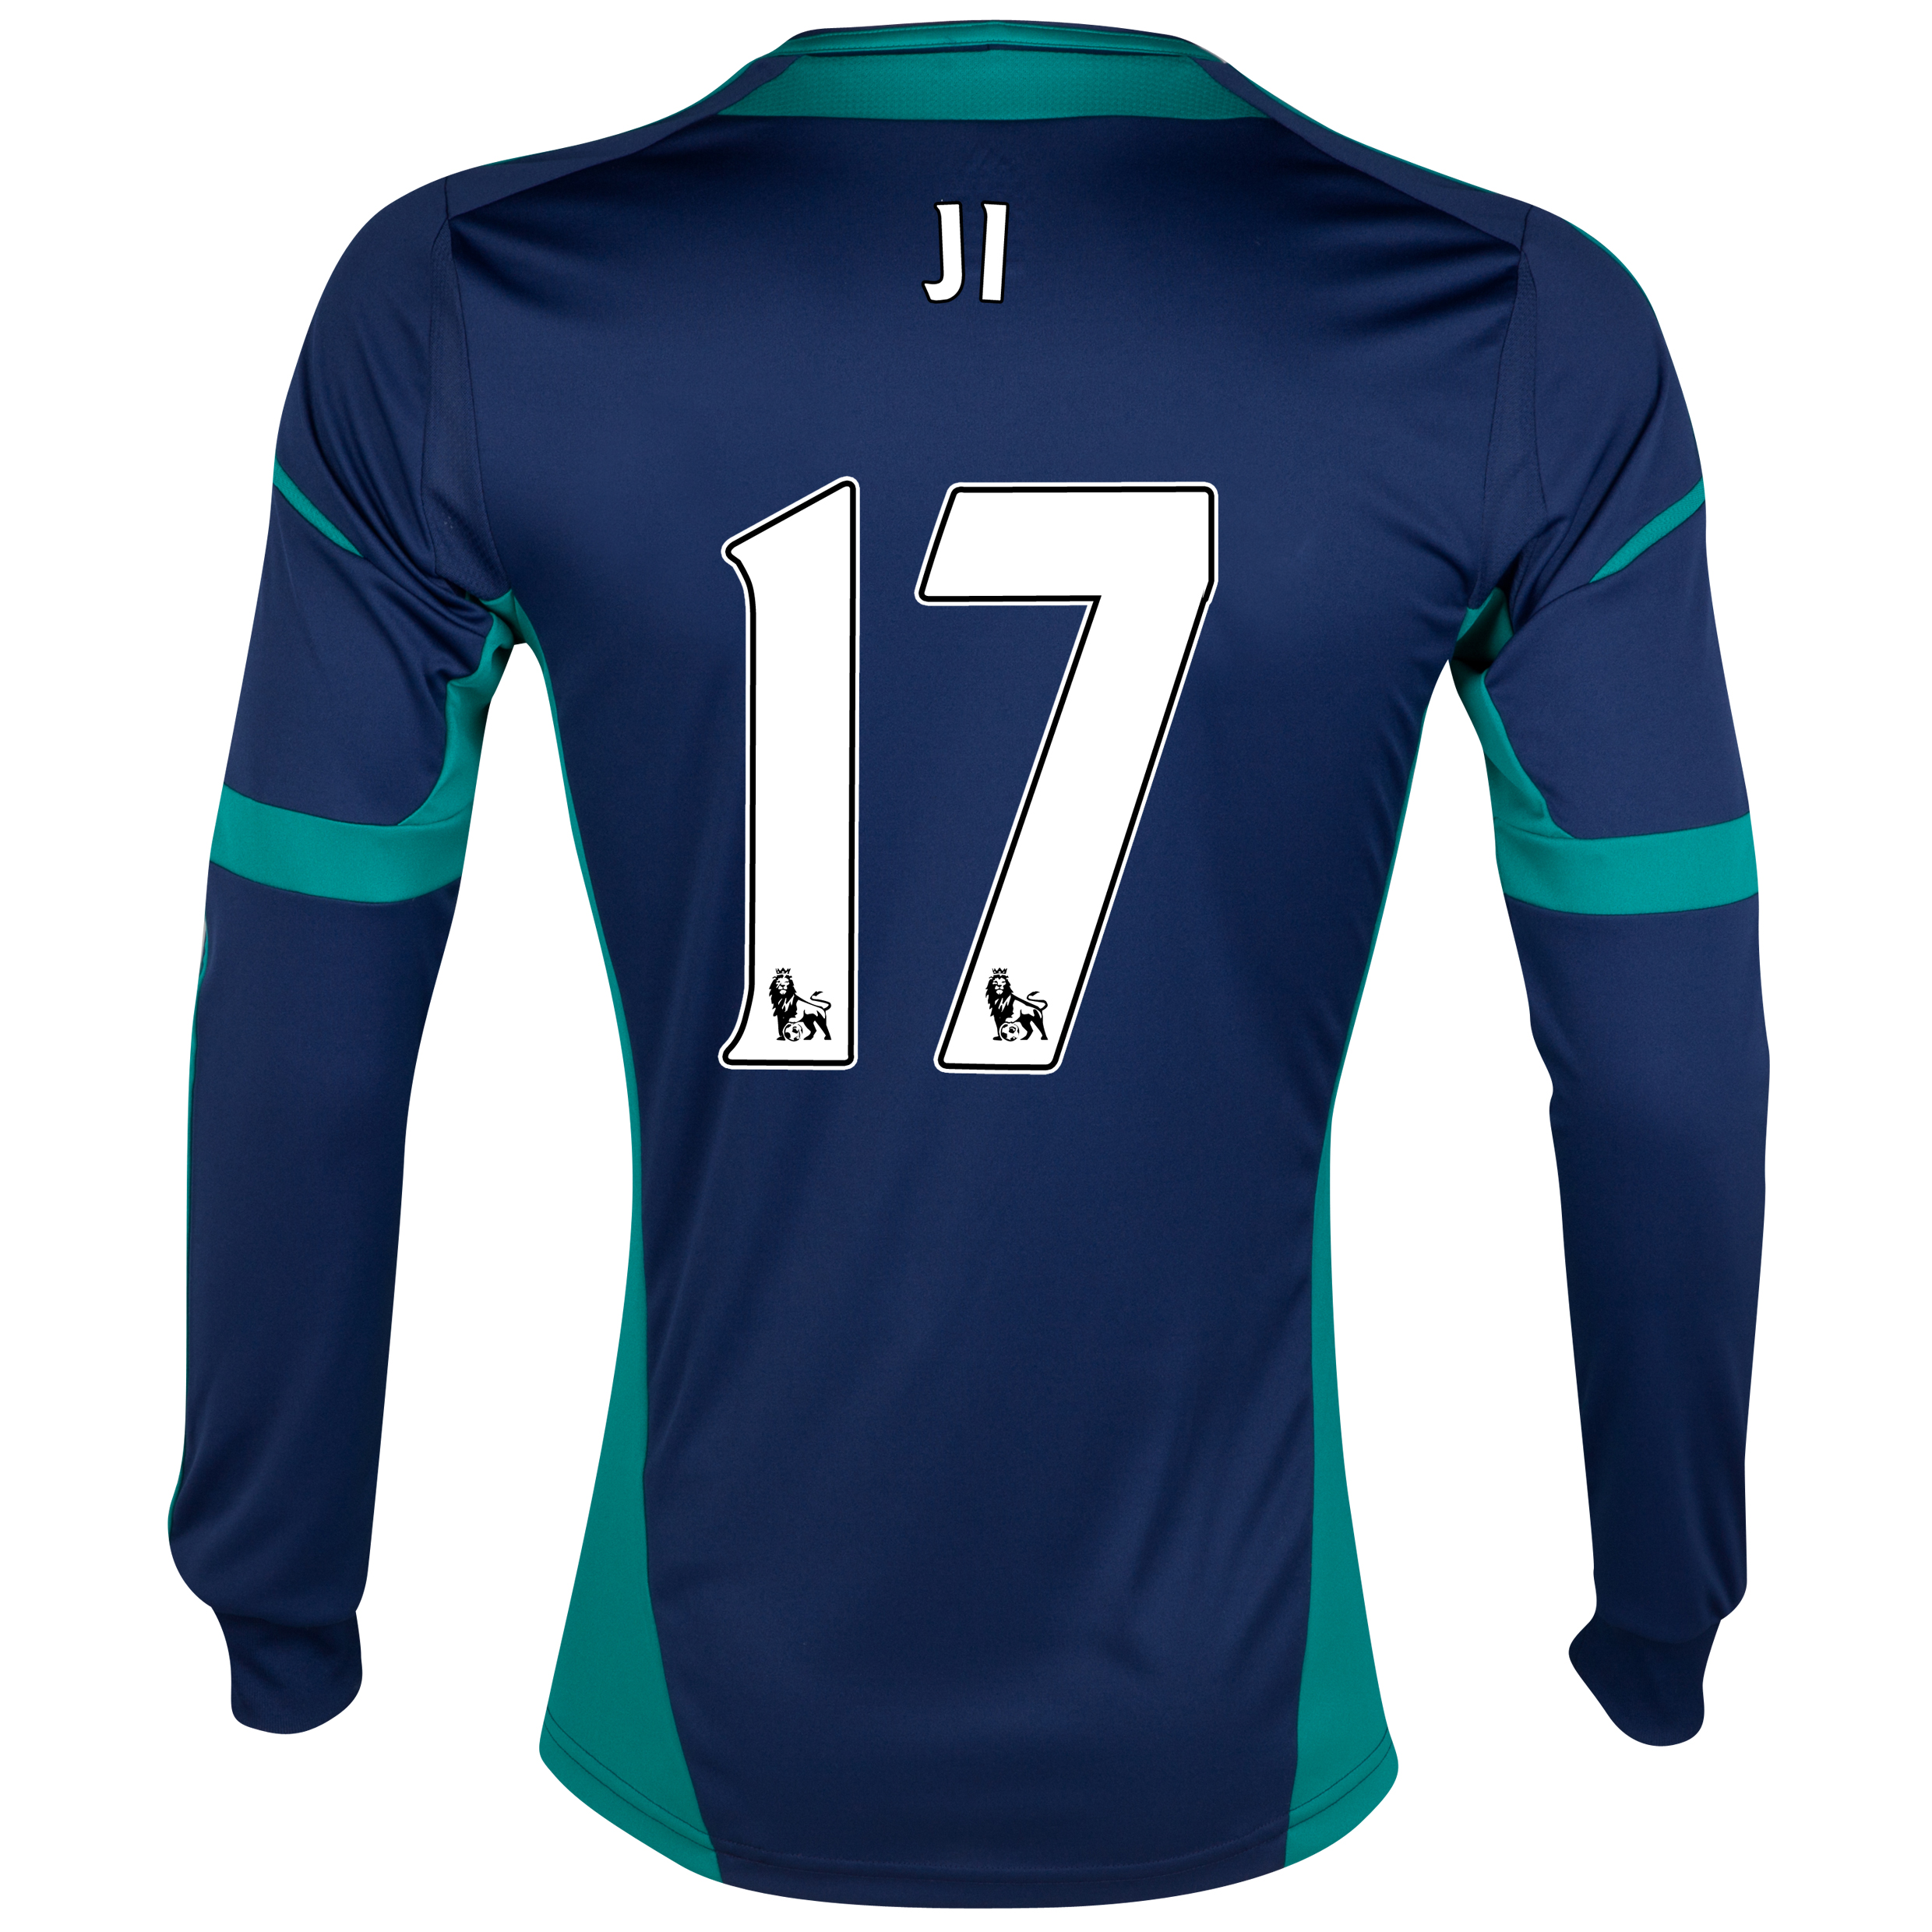 Sunderland Away Shirt 2012/13 - Long Sleeved - Junior with Ji 17 printing